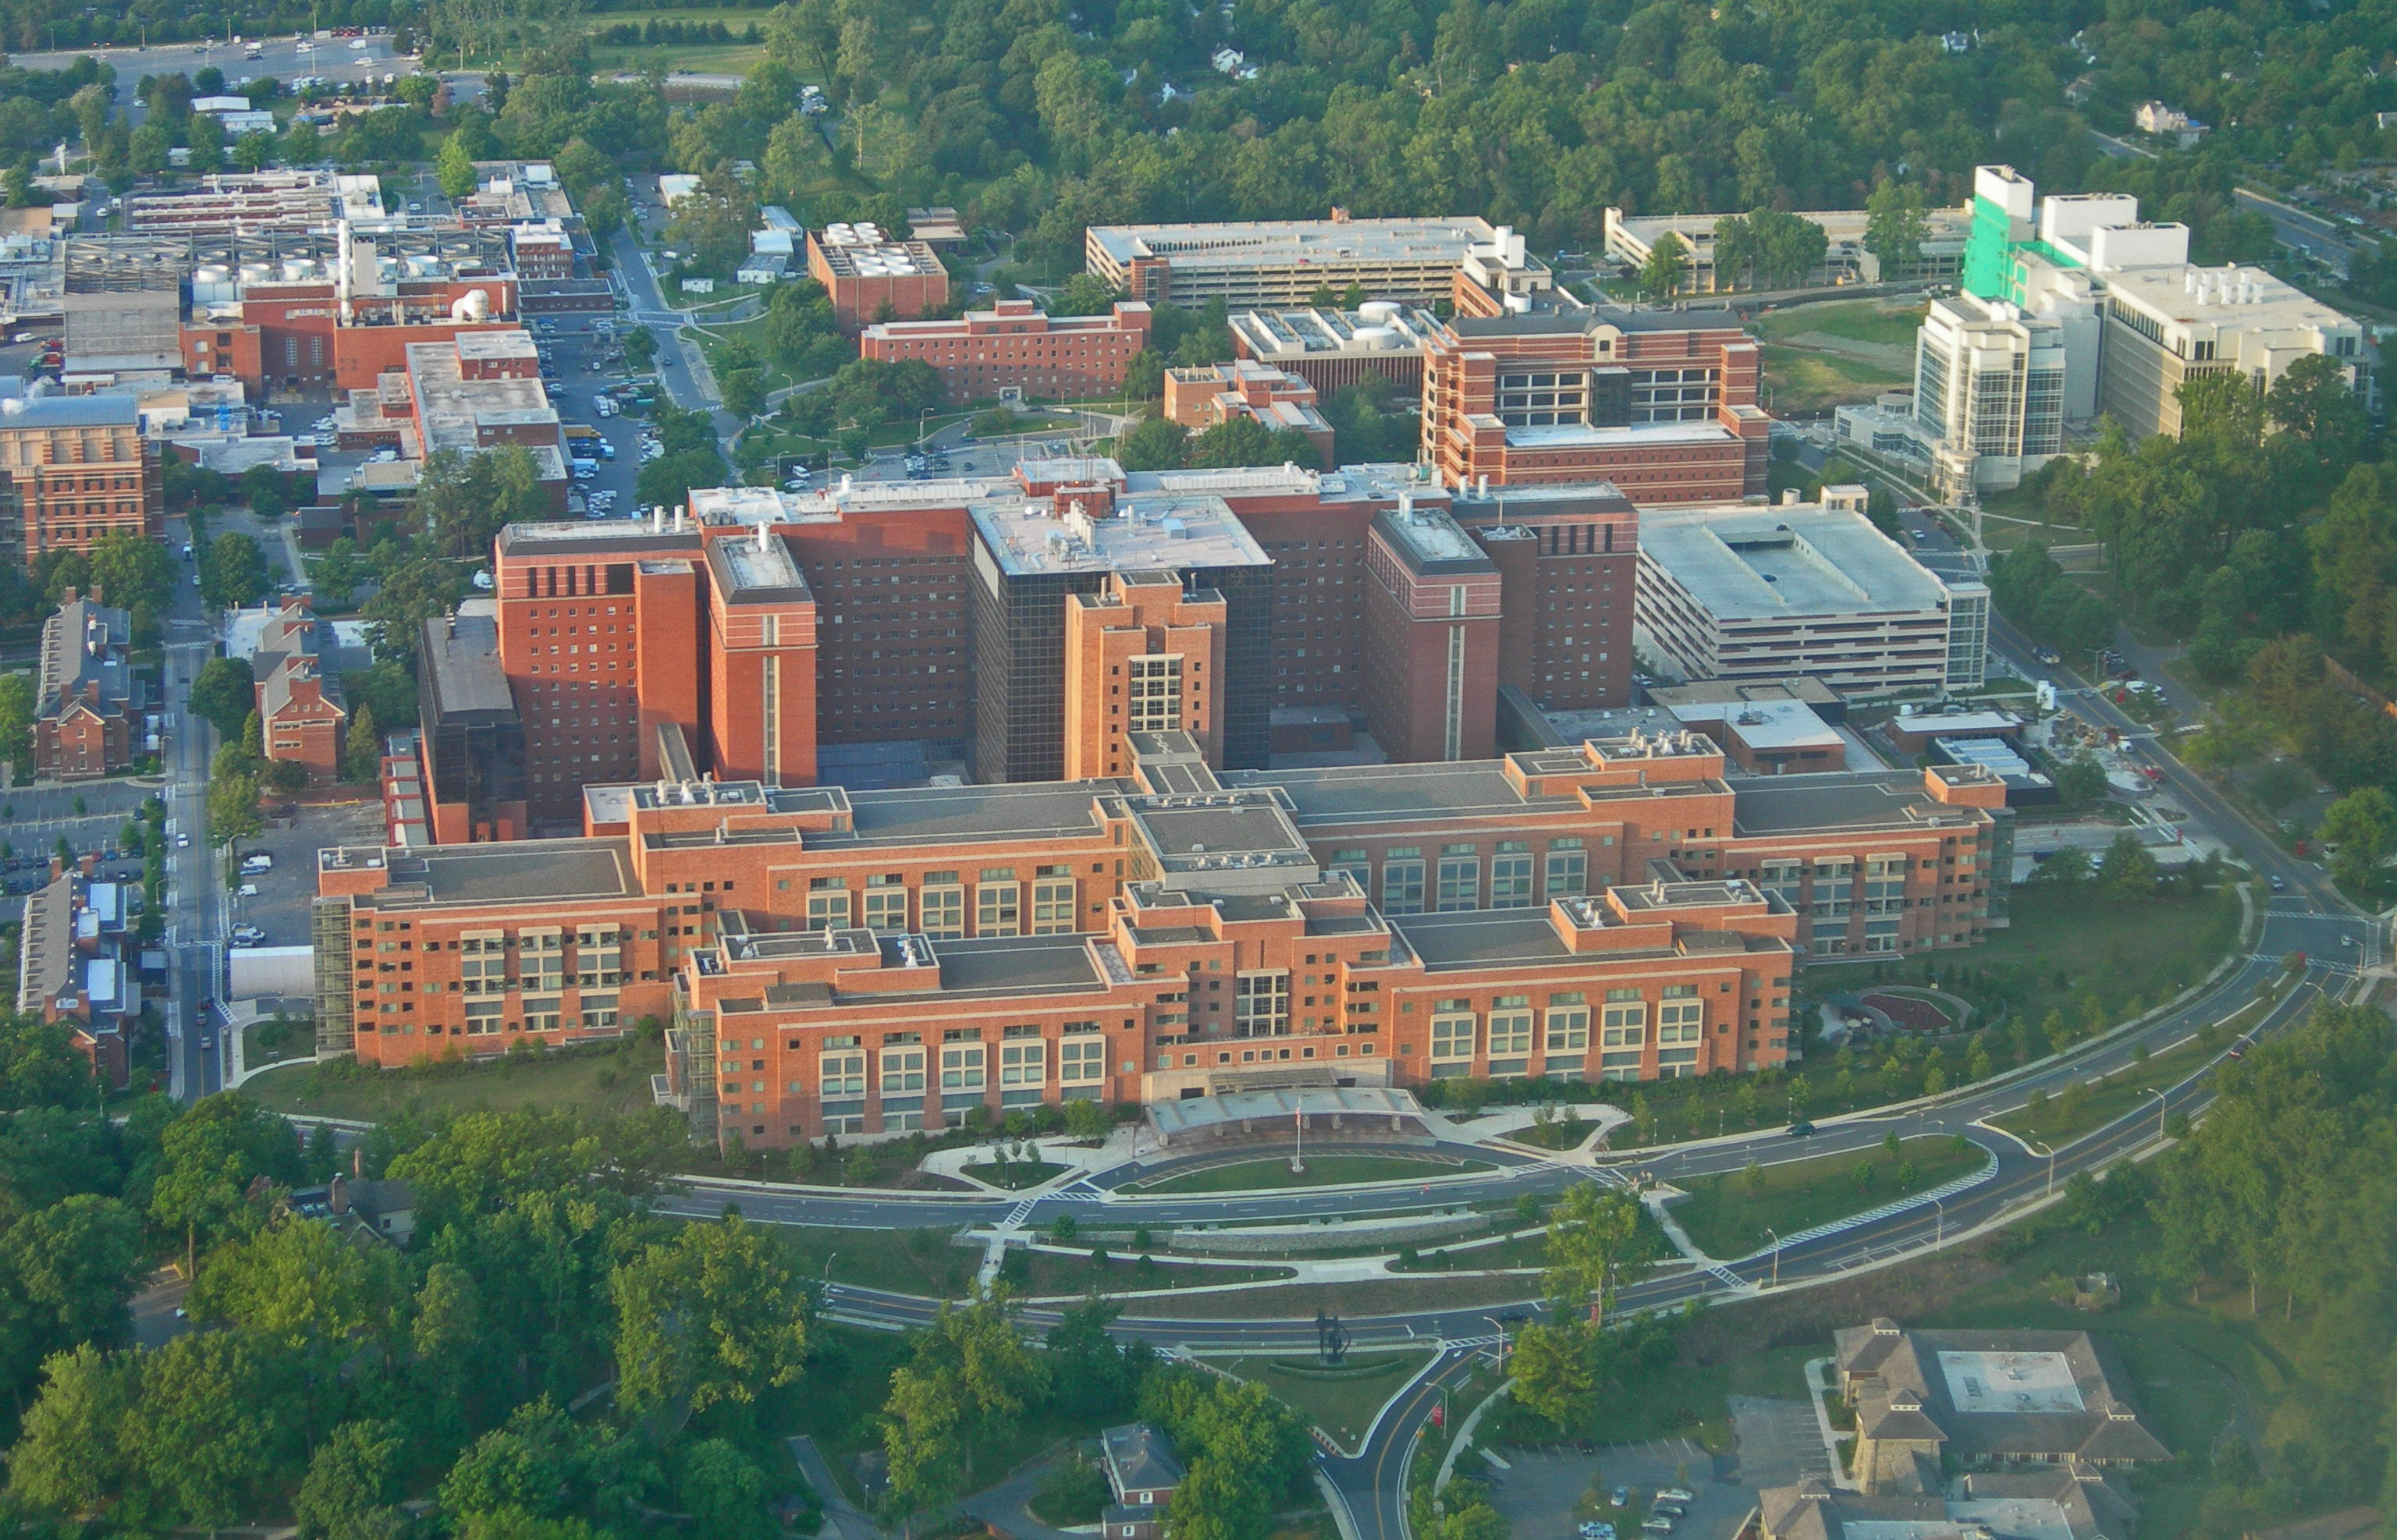 The National Institute of Health Clinical Center in Maryland is more than three million square feet.